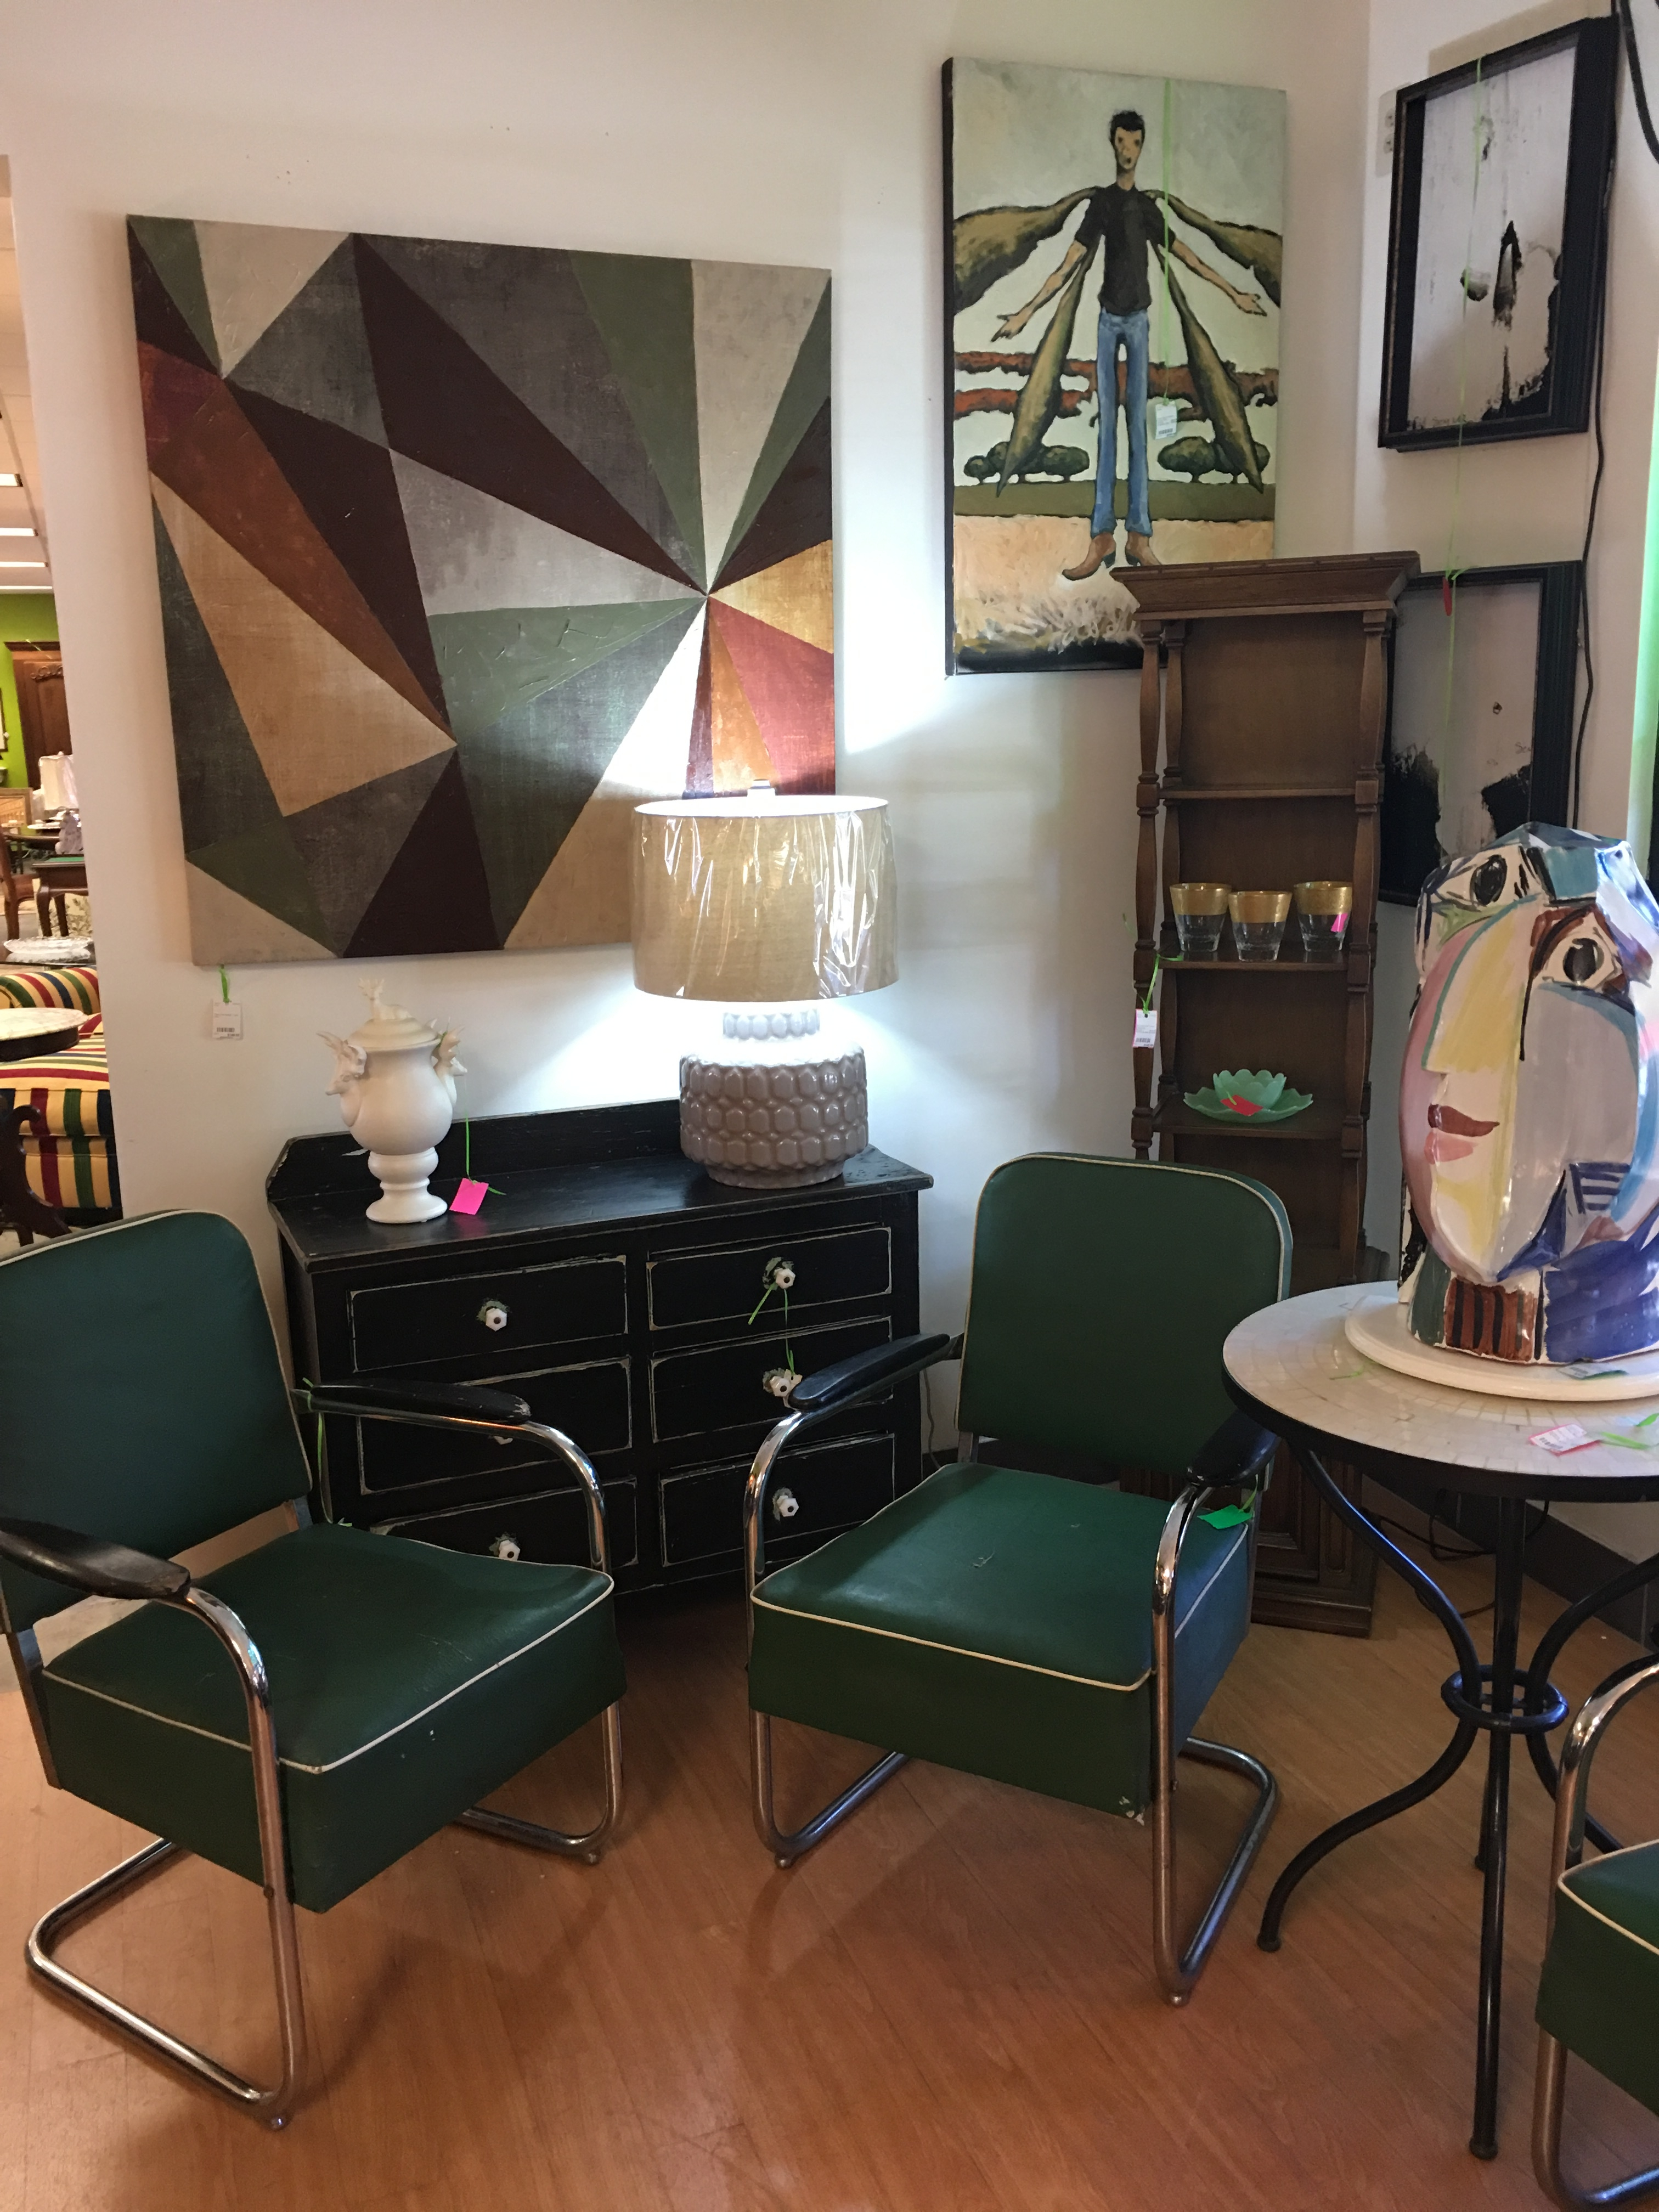 Consignment Furniture Consignment Furniture Vintage Green Chairs Eyedia Shop